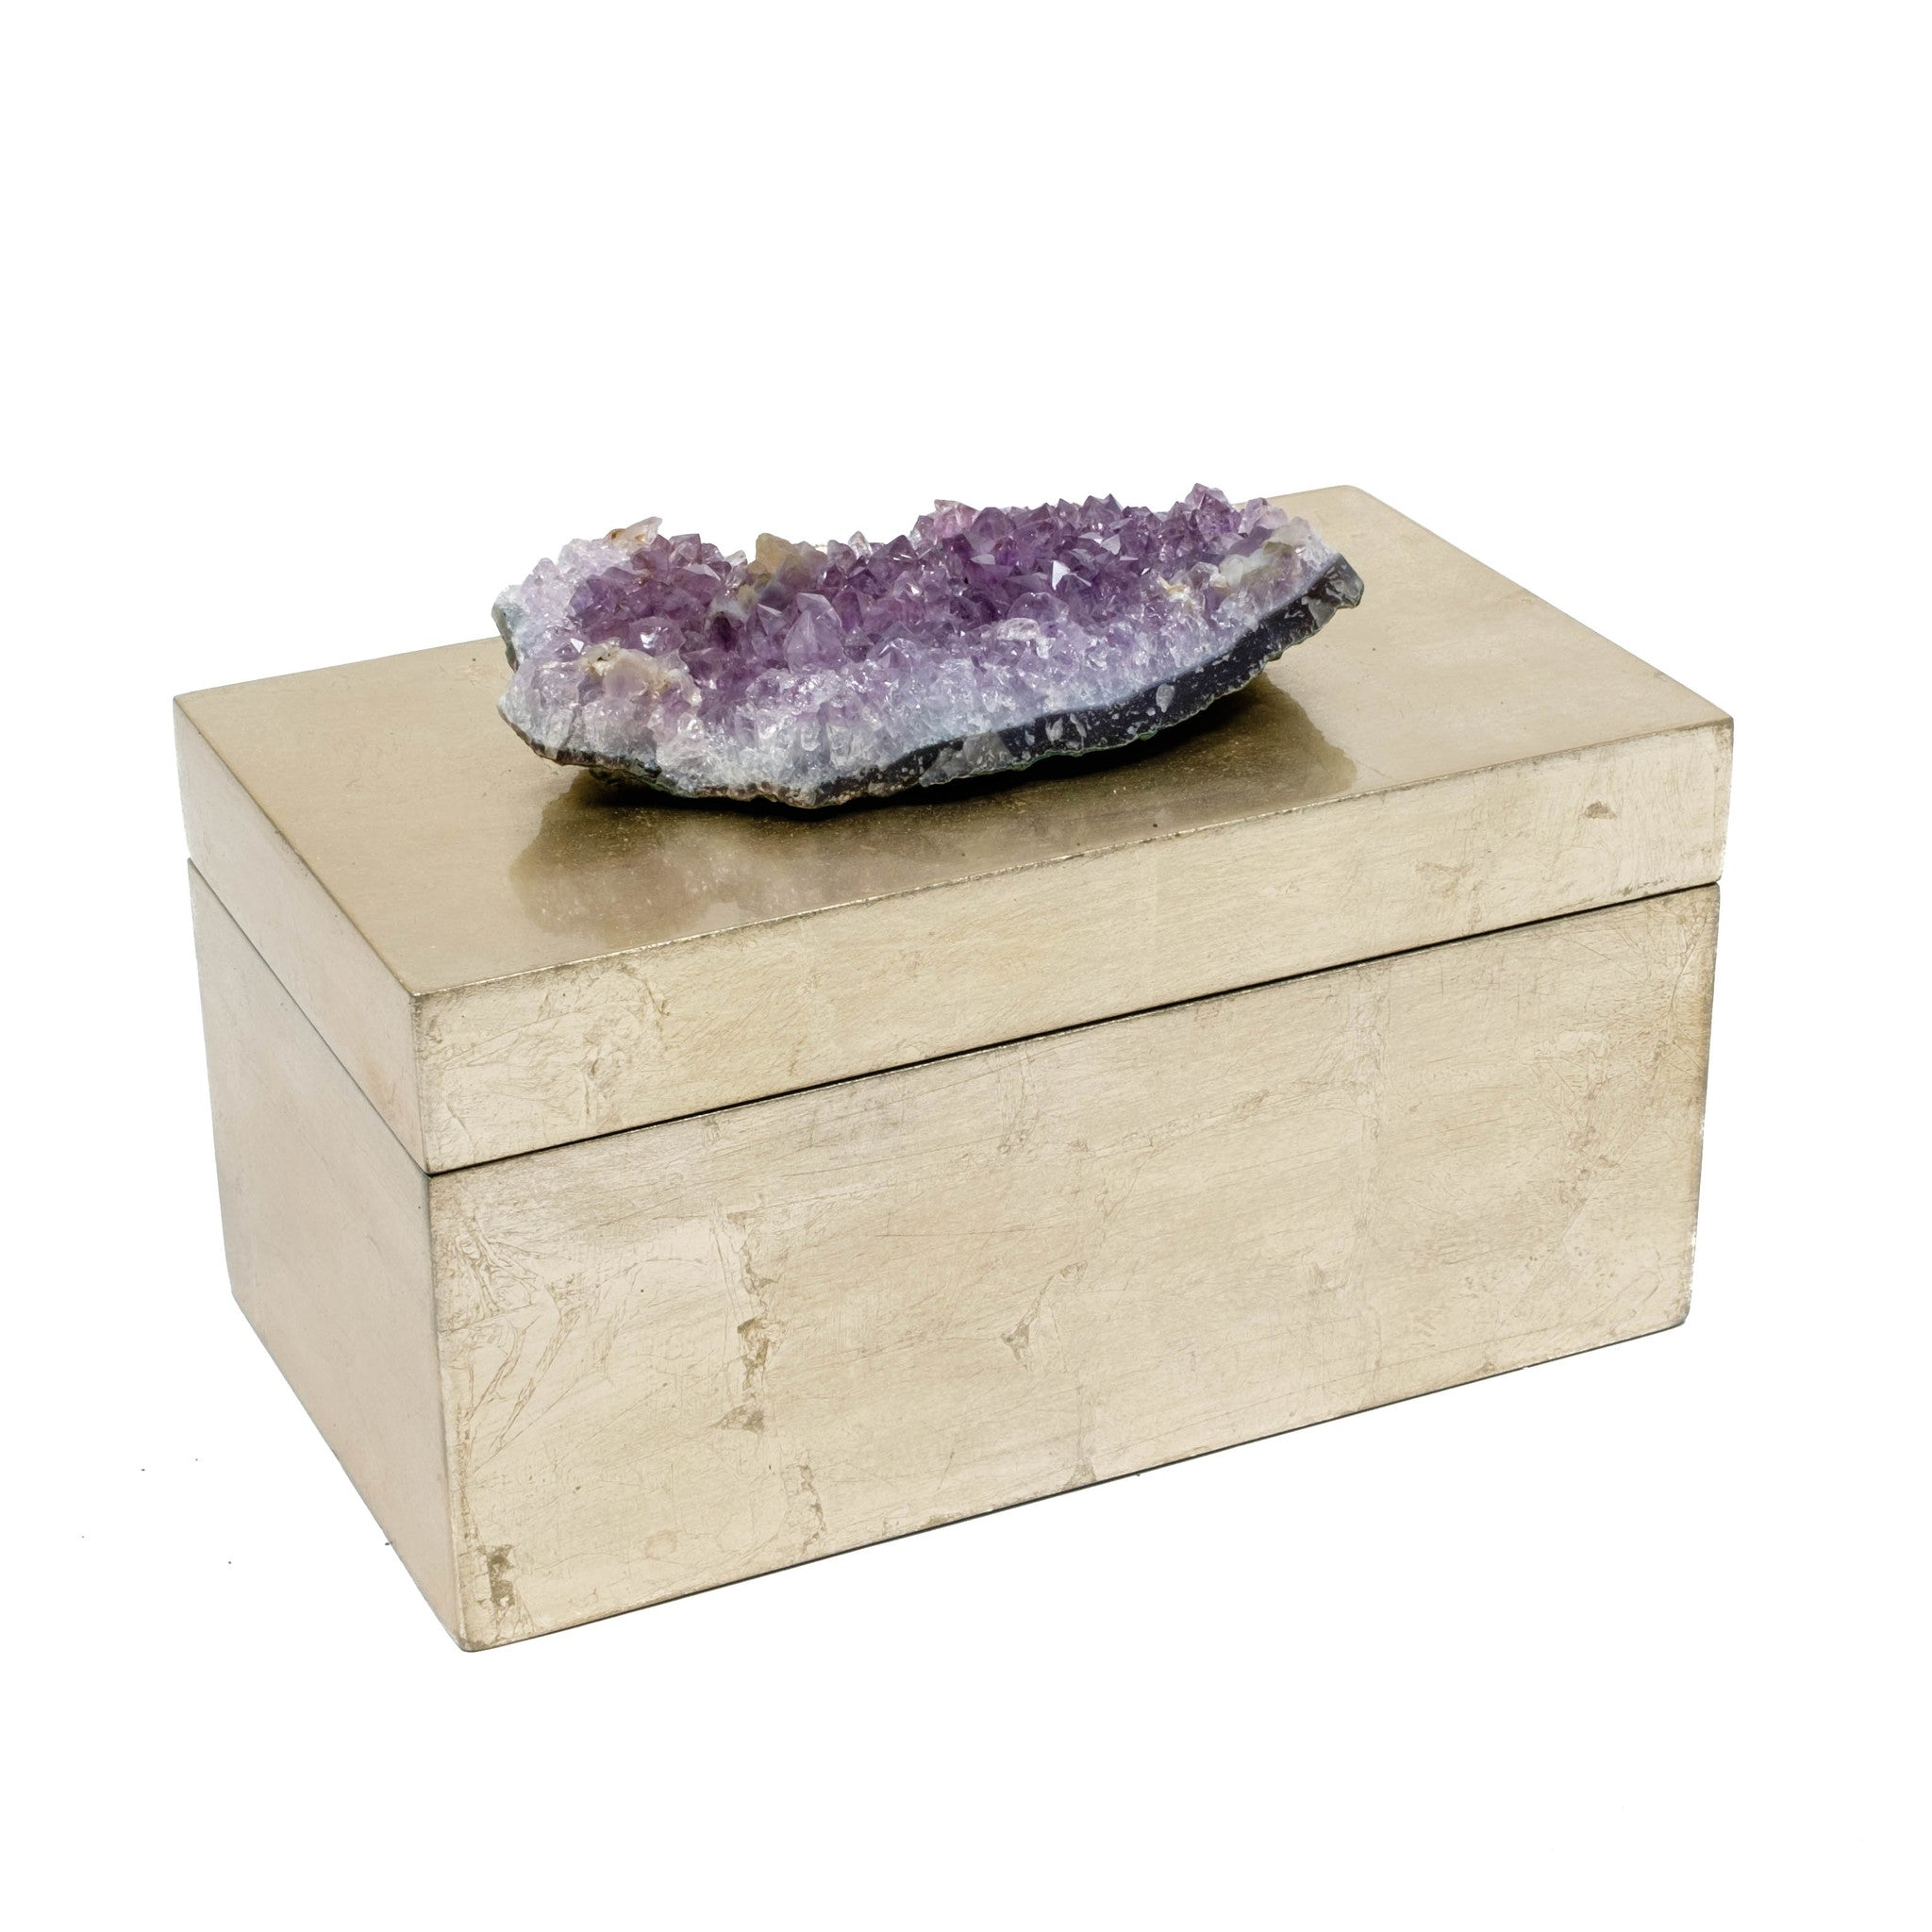 Brushed Gold Box with Amethyst Crystal